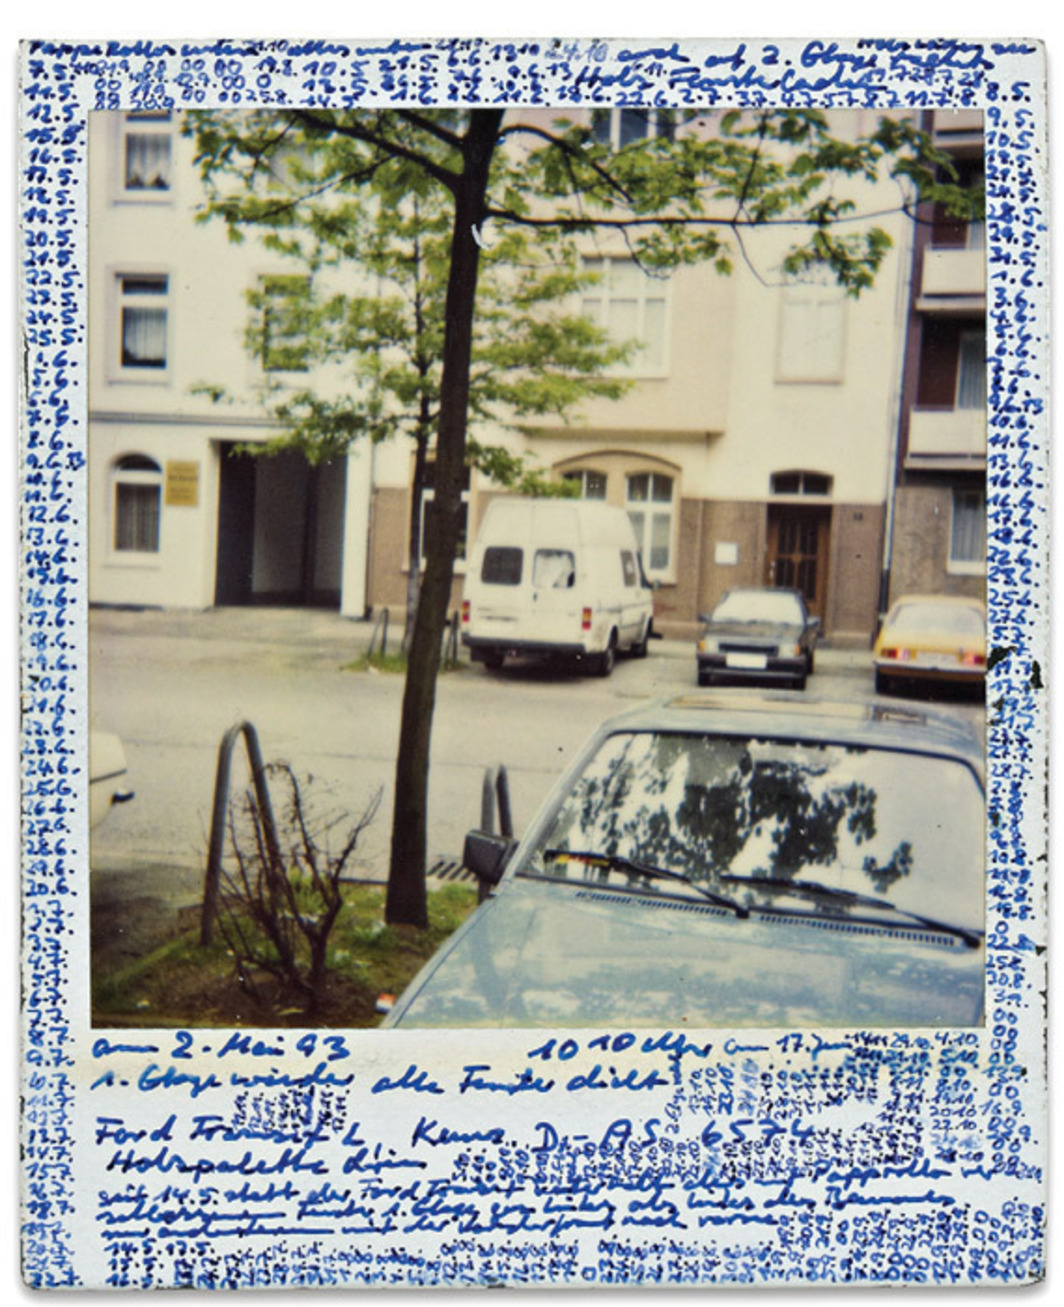 "Horst Ademeit, Untitled, 1993, mixed media on Polaroid, 4 1/4 x 3 1/2"". From the series Observationsbilder"" (Observation Images), 1990–2004."